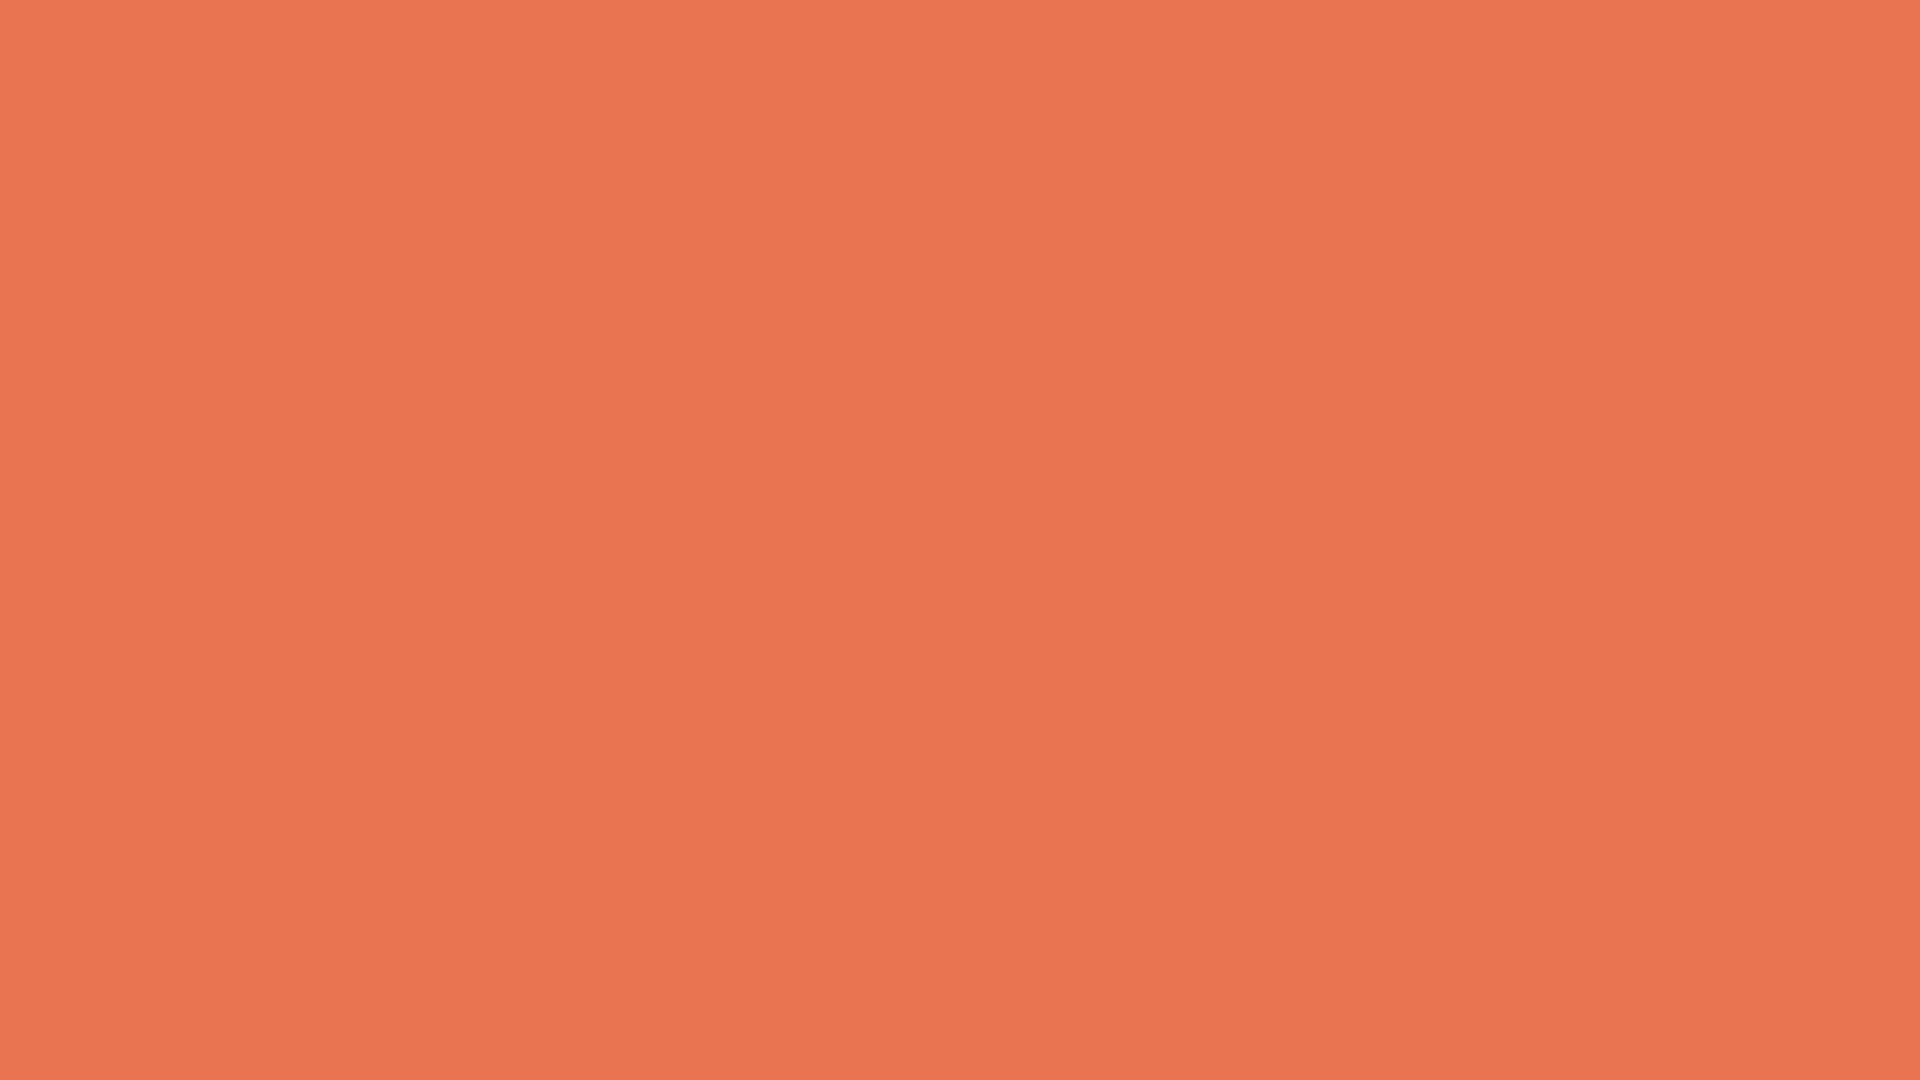 1920x1080 Light Red Ochre Solid Color Background